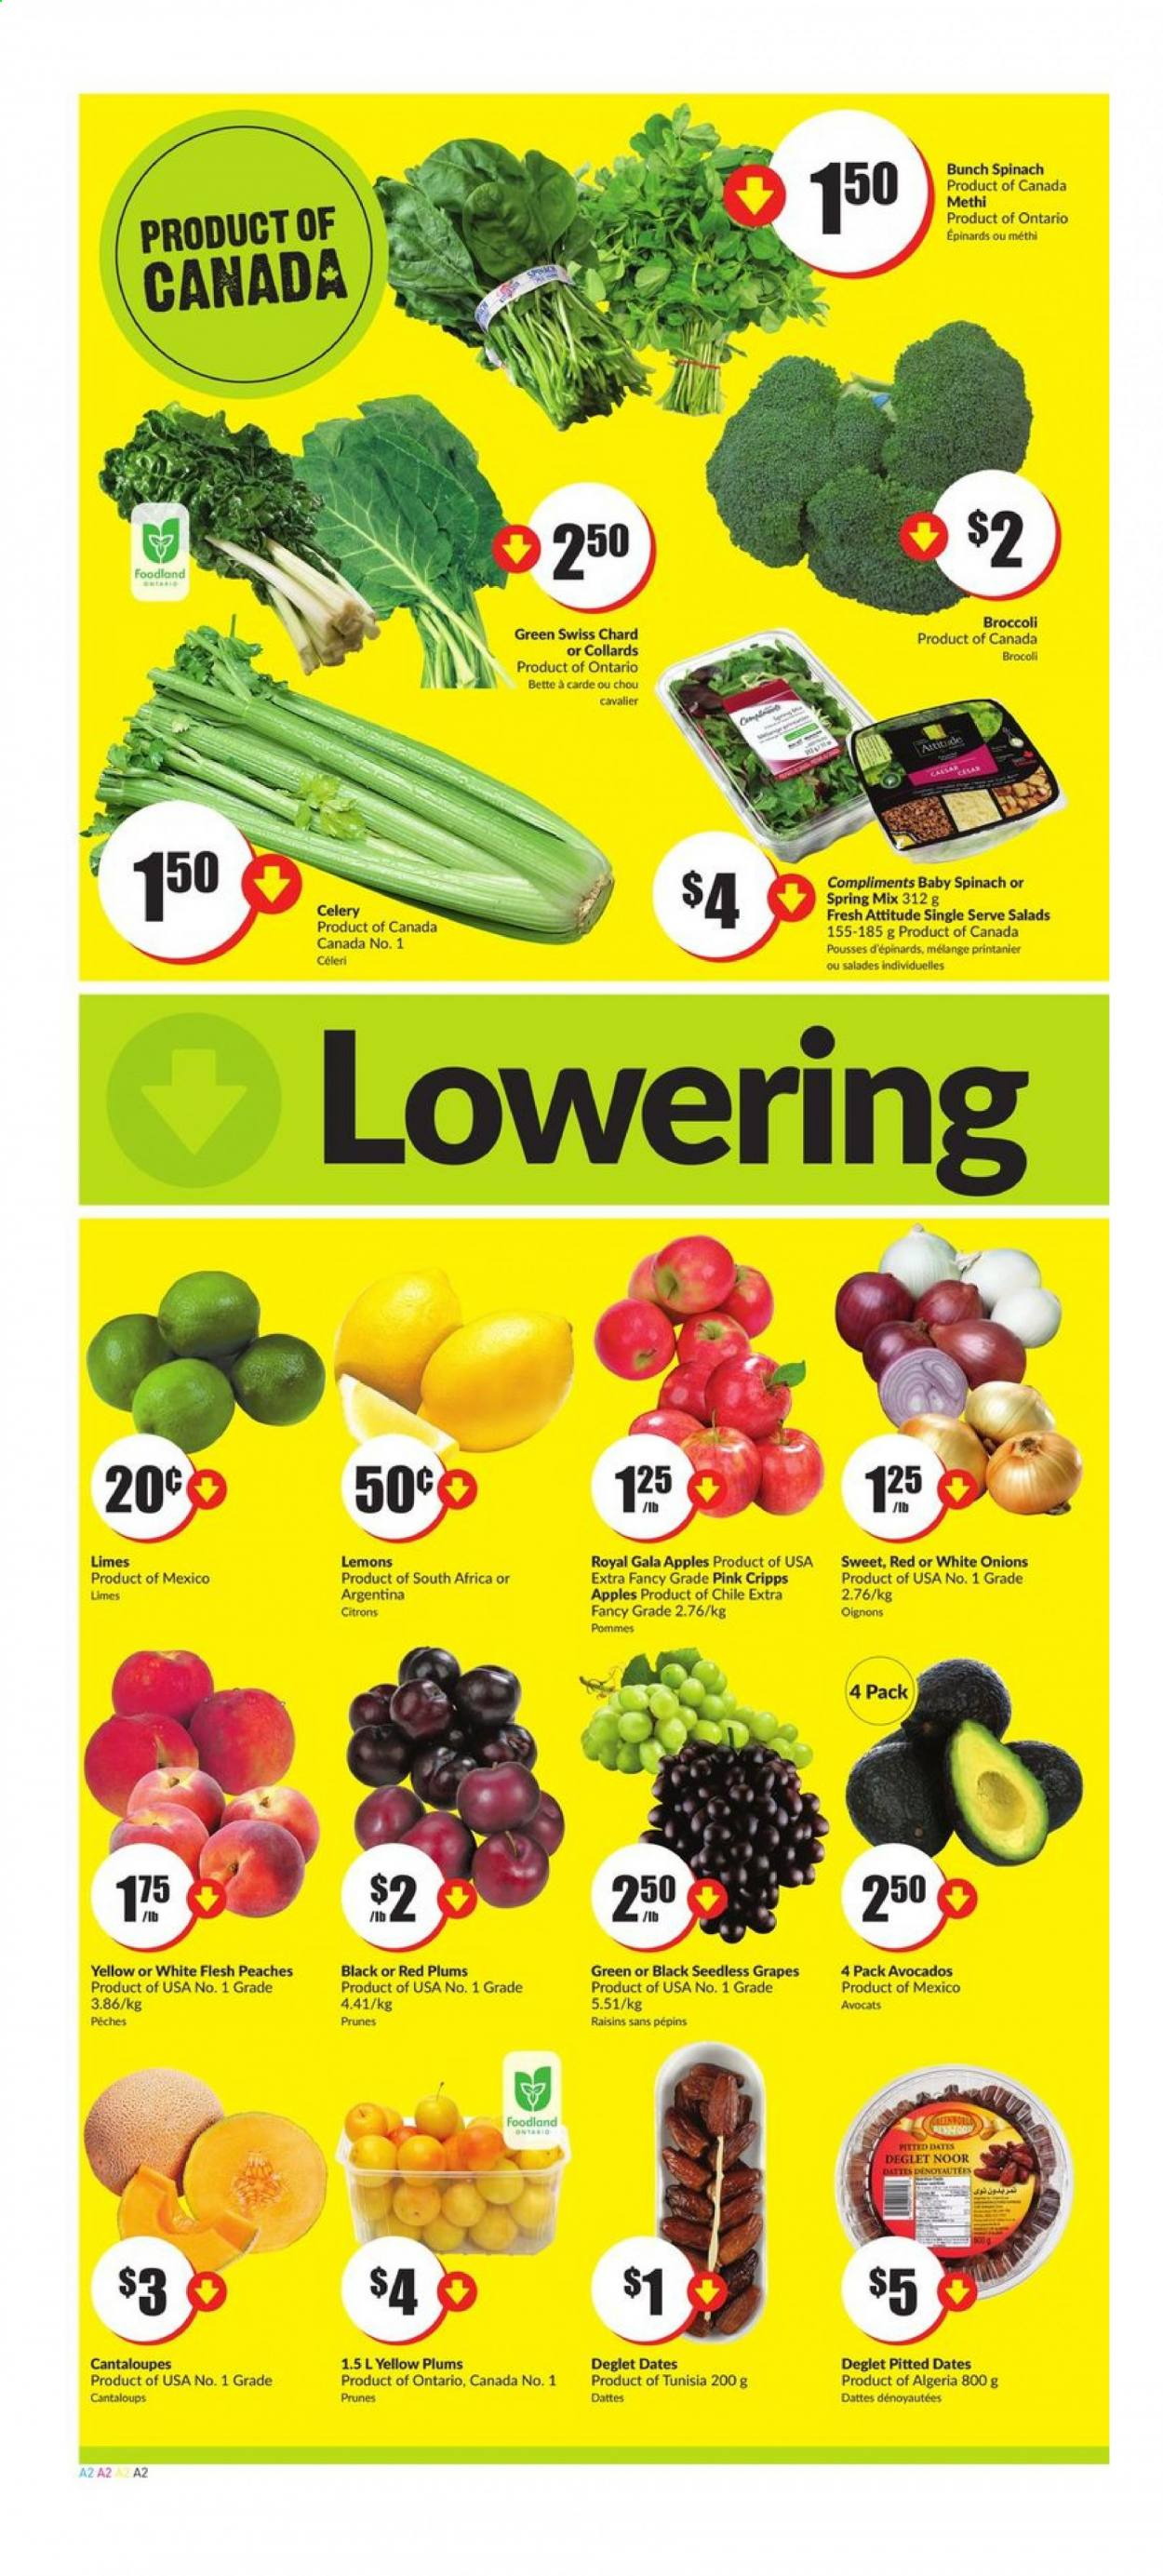 FreshCo. Flyer - July 30, 2020 - August 05, 2020 - Sales products - avocado, broccoli, cantaloupe, celery, dates, gala apples, grapes, lemons, limes, raisins, seedless grapes, spinach, plums, prunes, chard, peaches, onion, red plums, pommes, brocoli, cavalier, céleri, datte, epinard, chou, prune, oignons, pêche. Page 2.